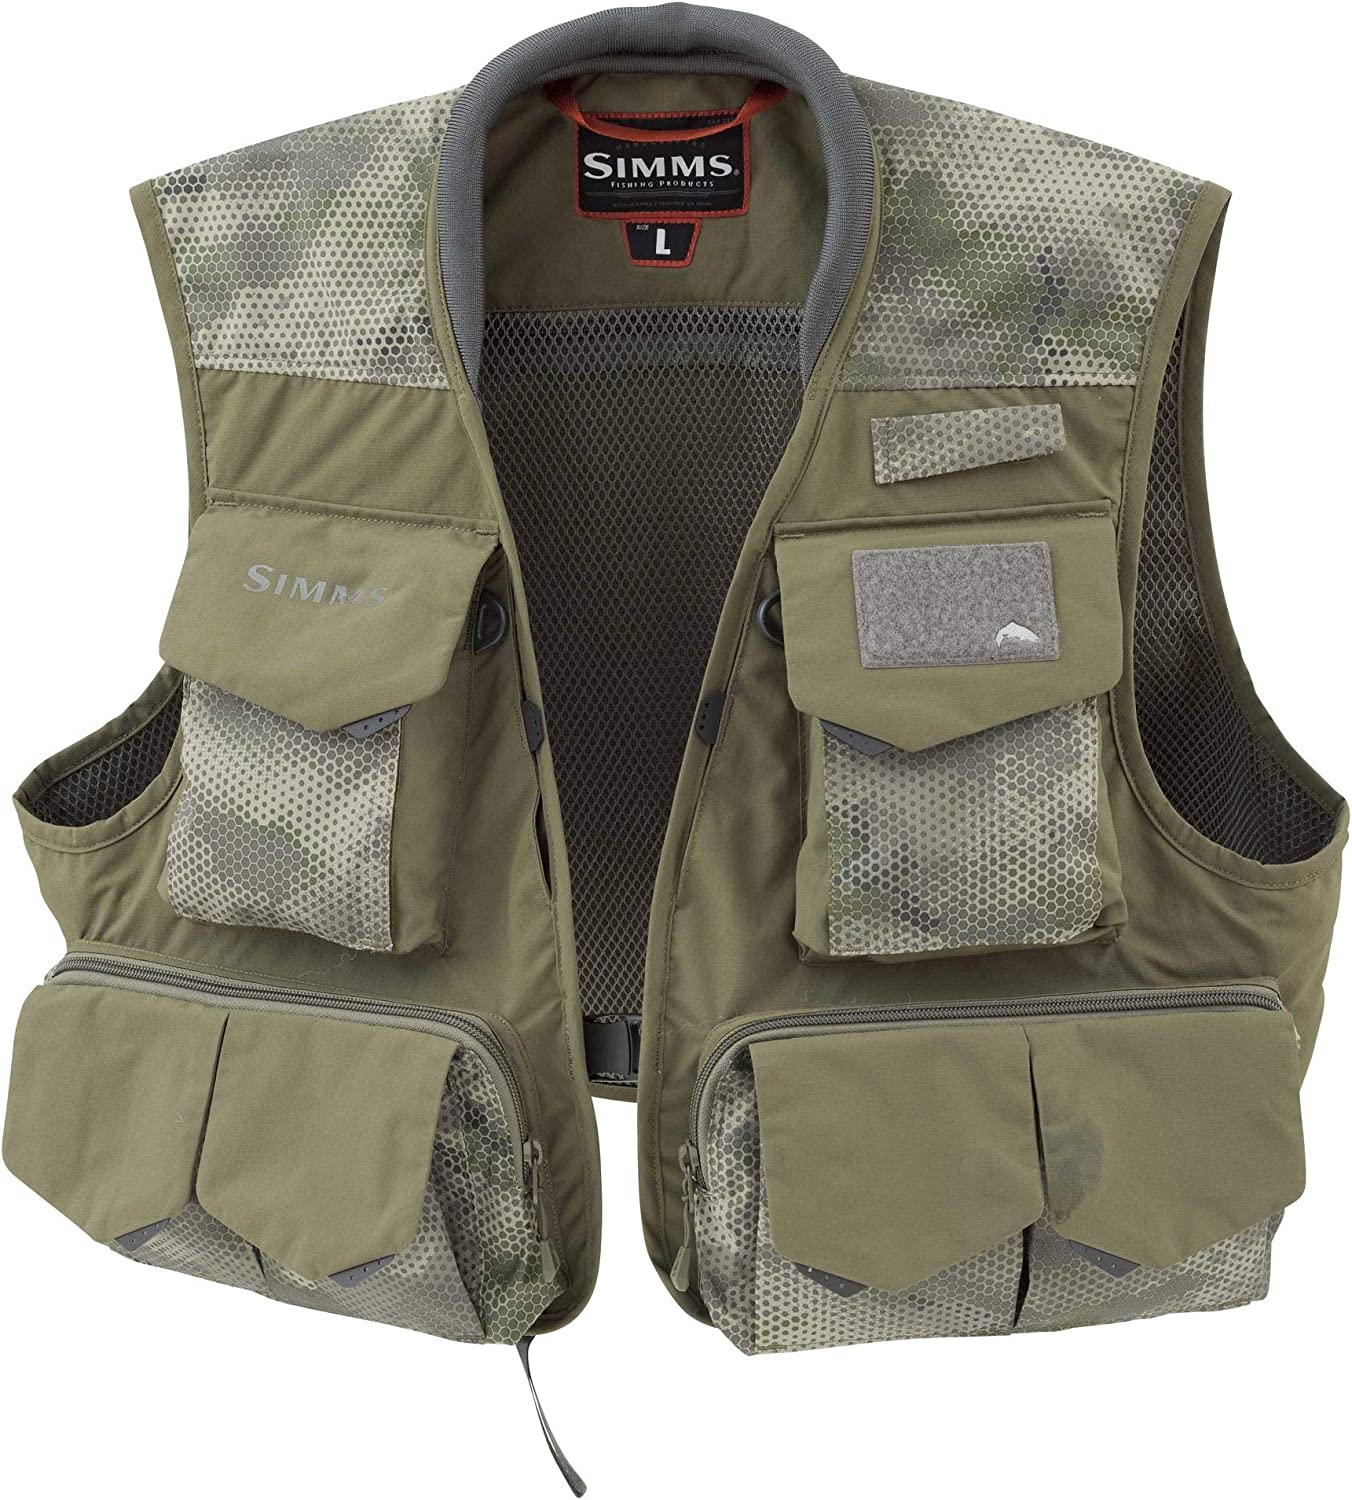 Simms Our shop OFFers the best service Freestone Import Fishing Vest 19 Sleeveless Pocket